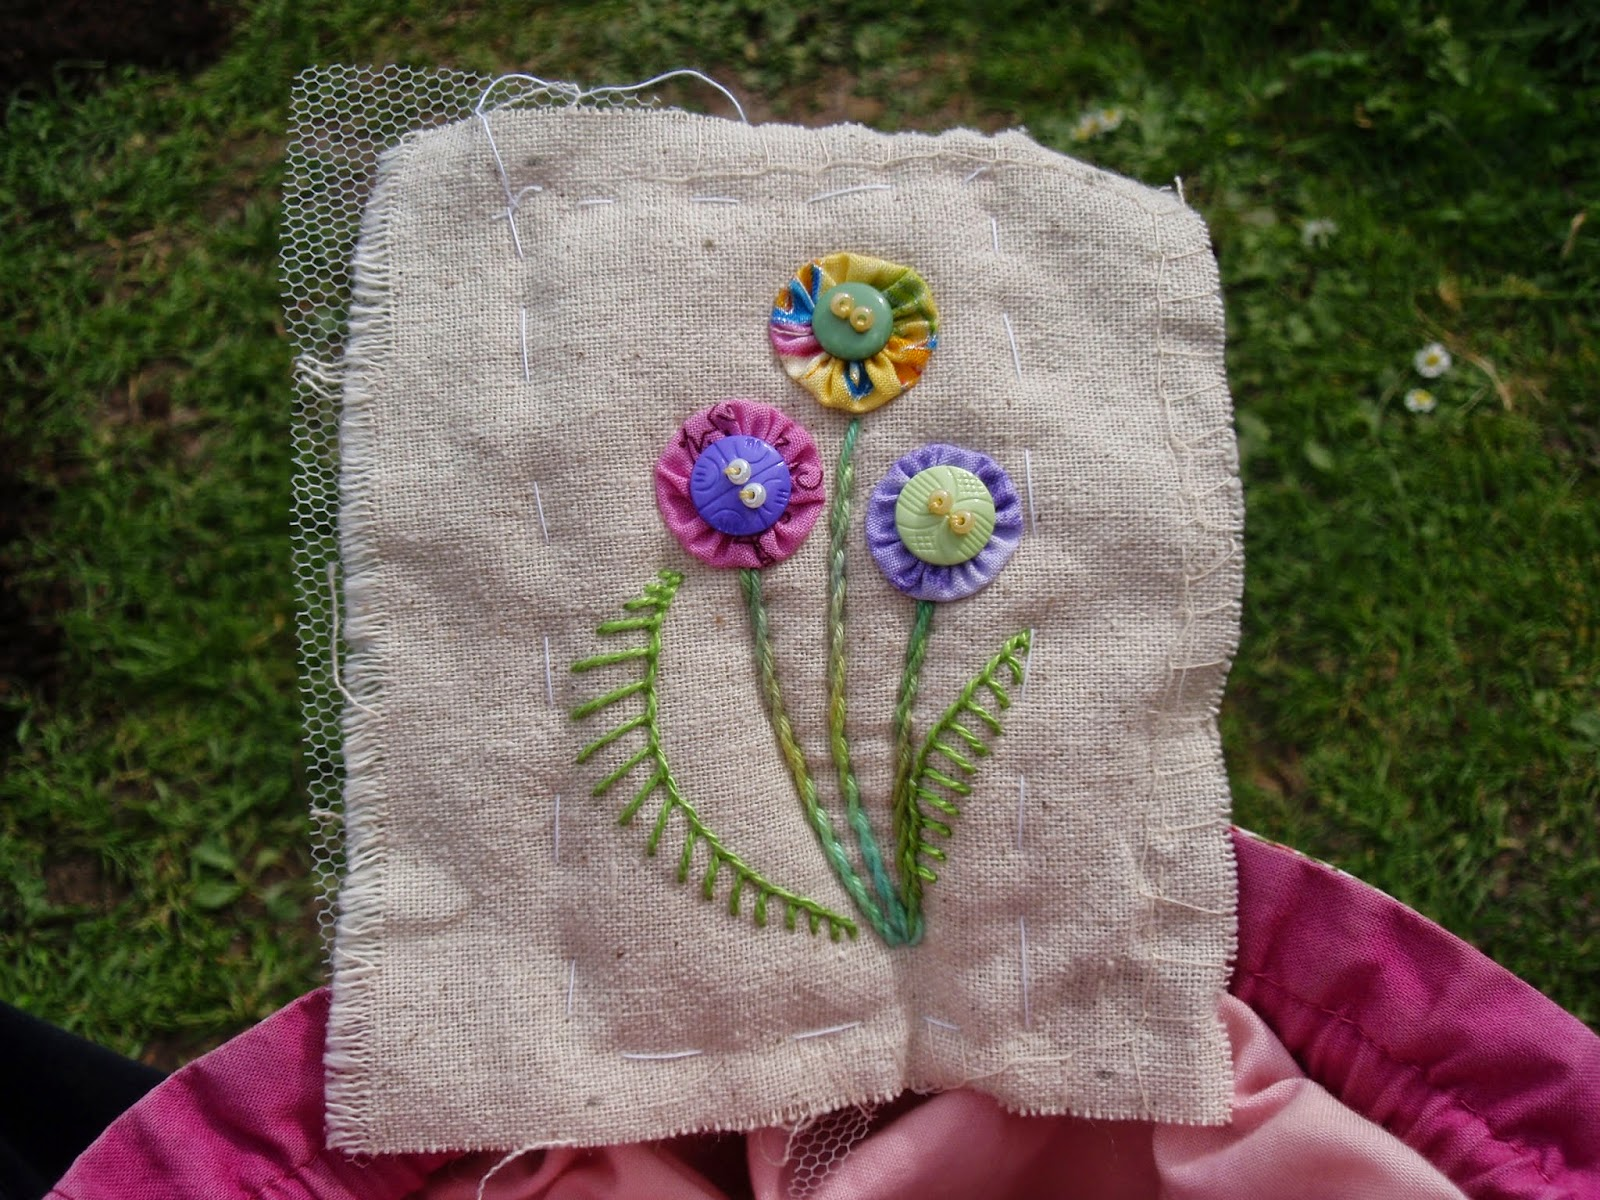 Embroidery finished, frame removed